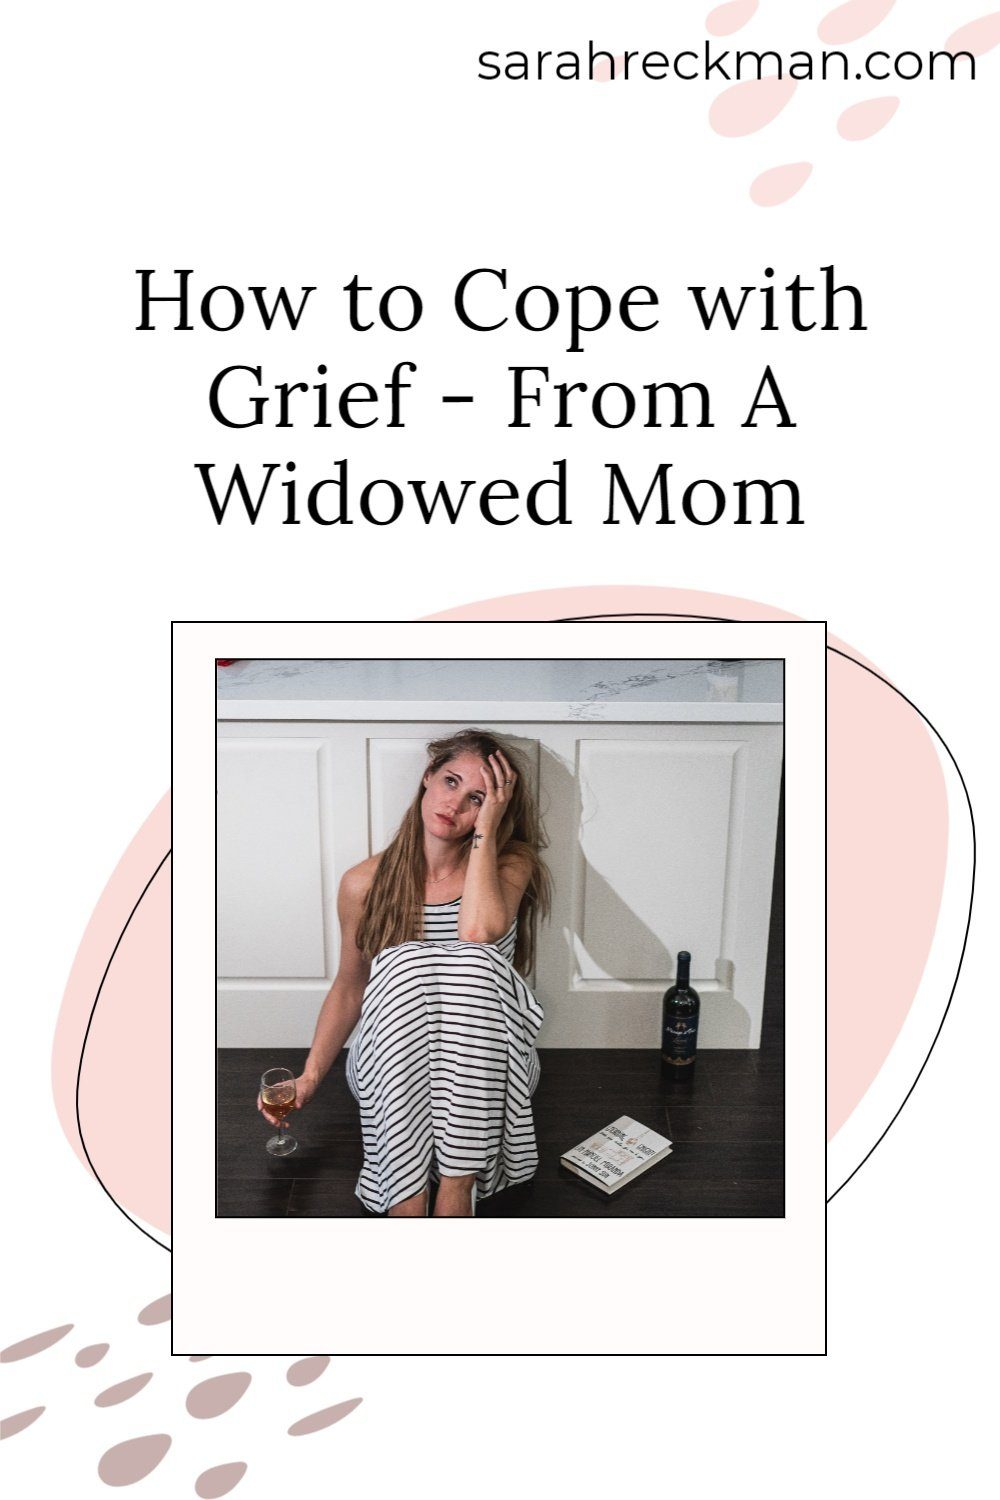 6 tips about grieving for a widowed mom